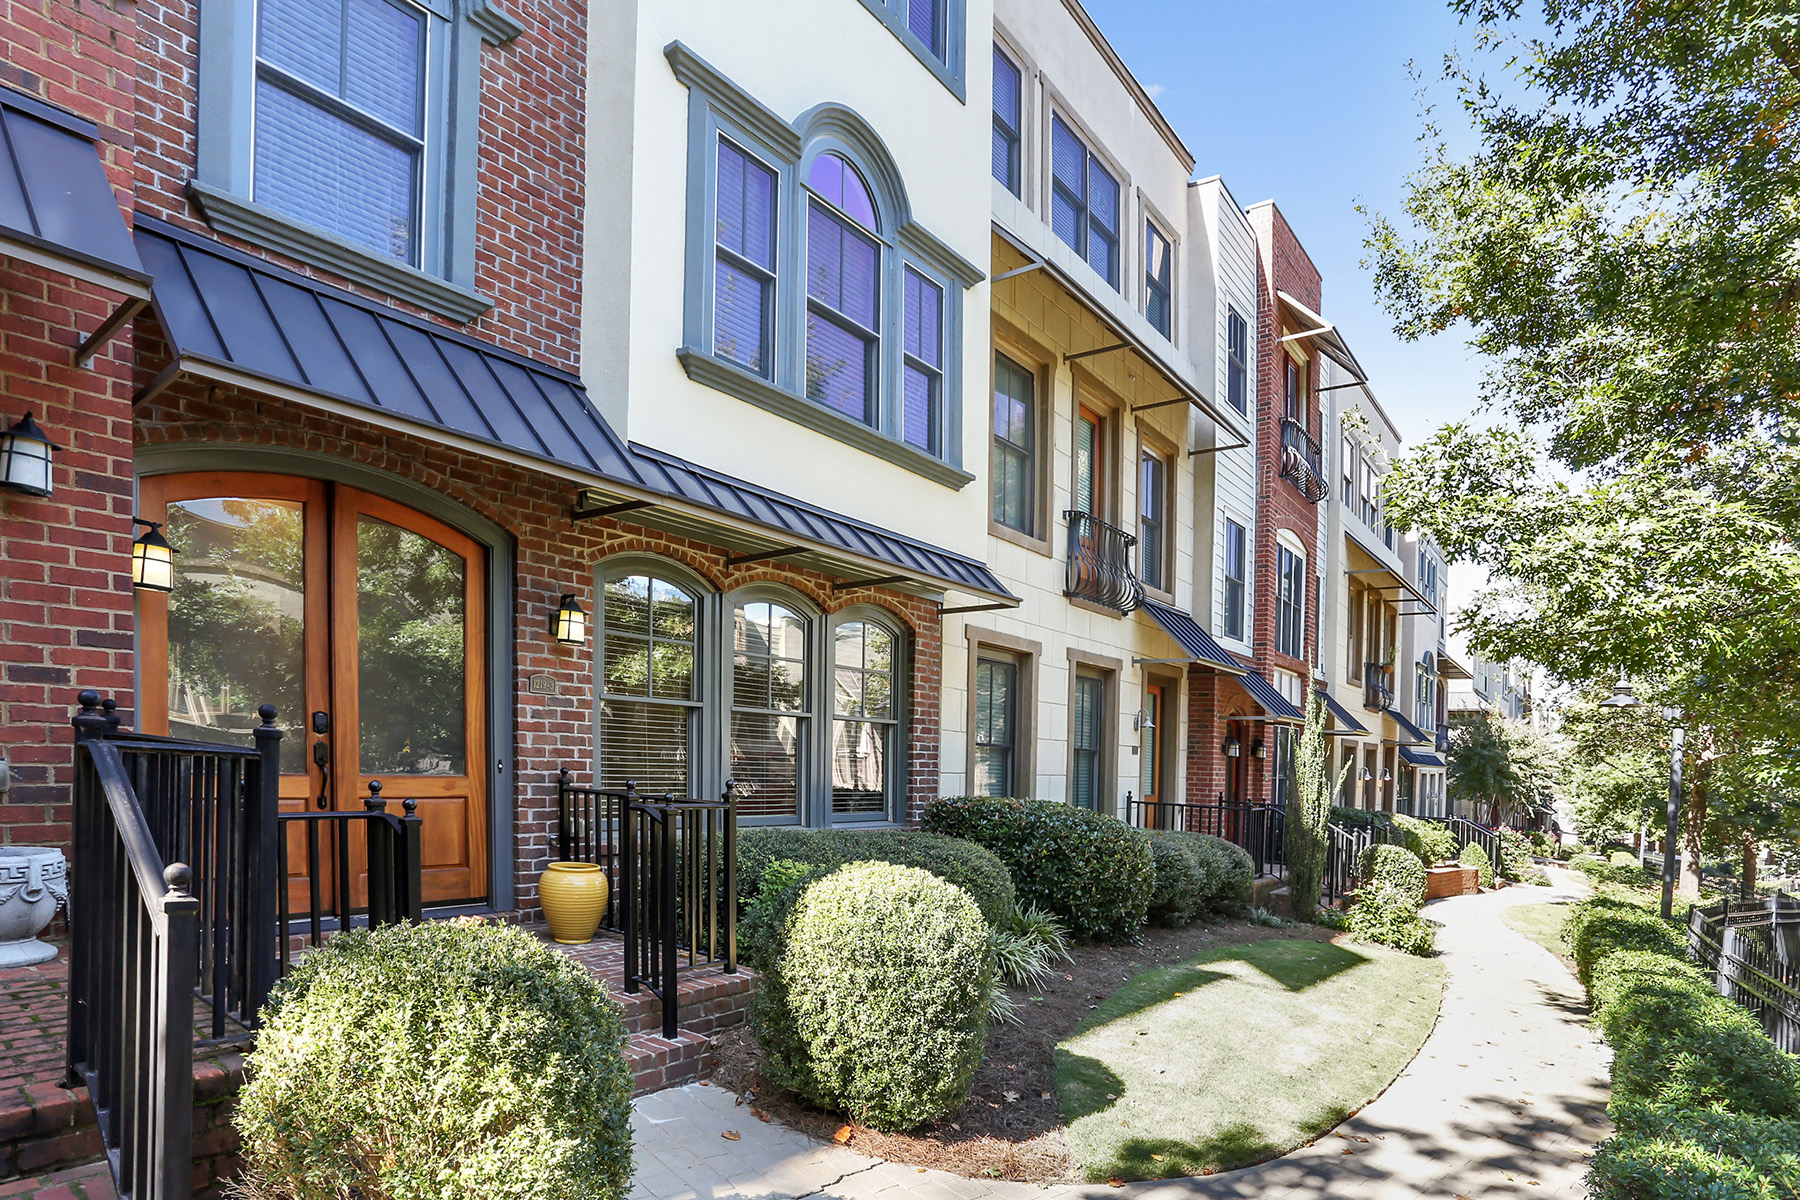 Sophisticated Townhome in Atlantic Station 1219 Mecaslin Street NW Unit 3 Atlanta, Georgia 30318 United States